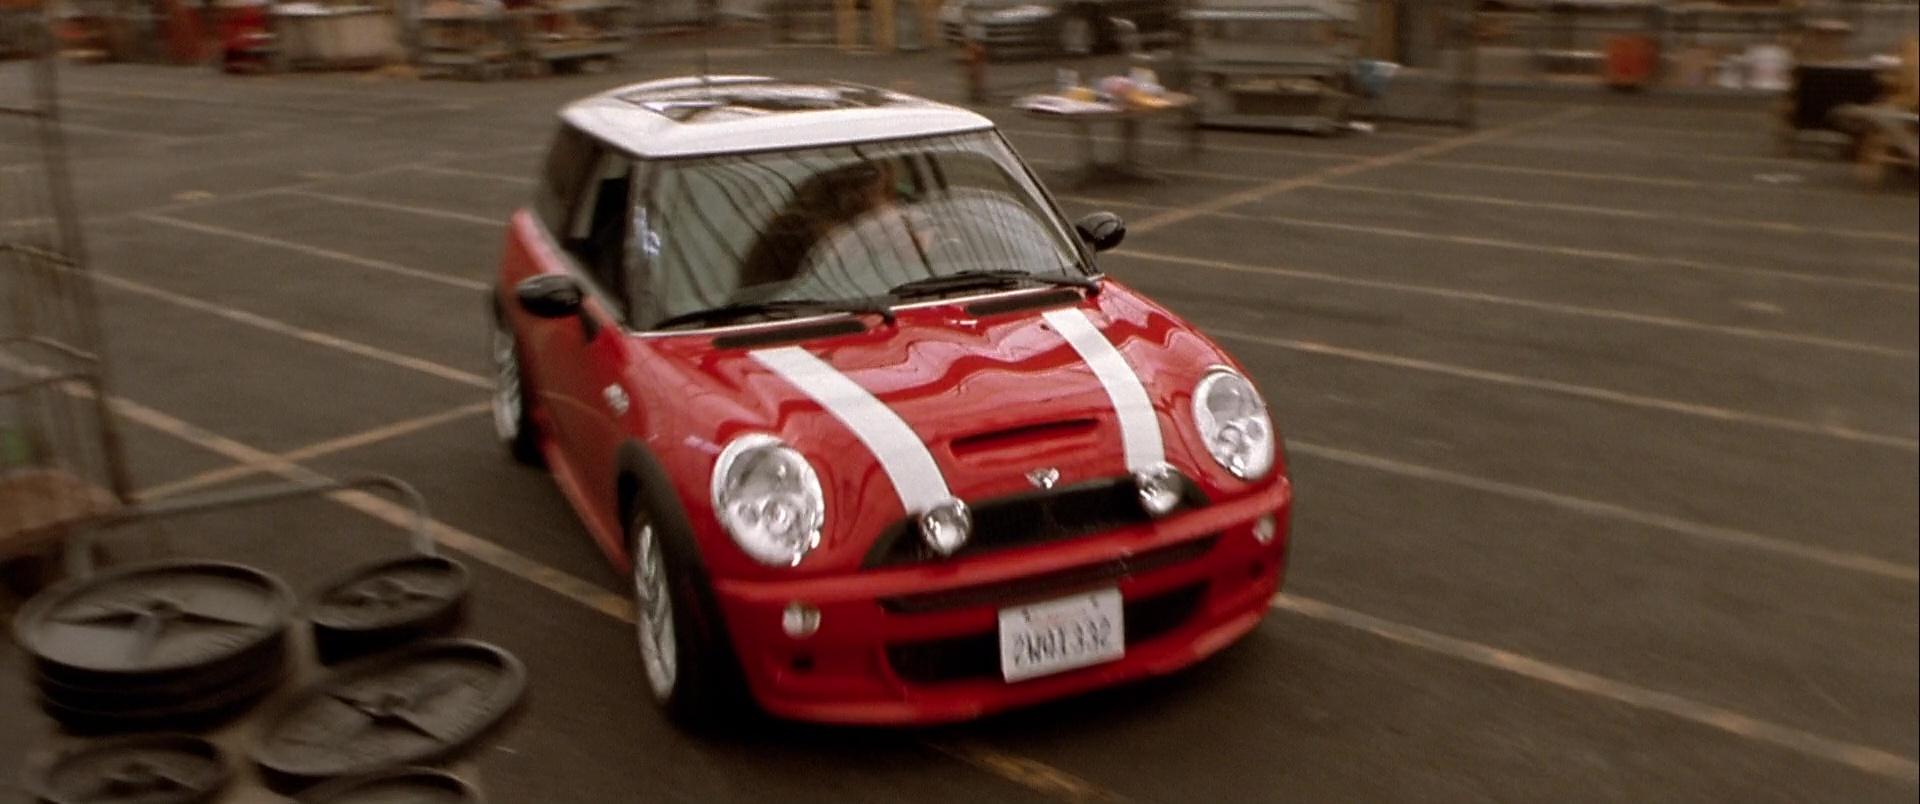 Mini Cooper S Red Car Used By Charlize Theron In The Italian Job